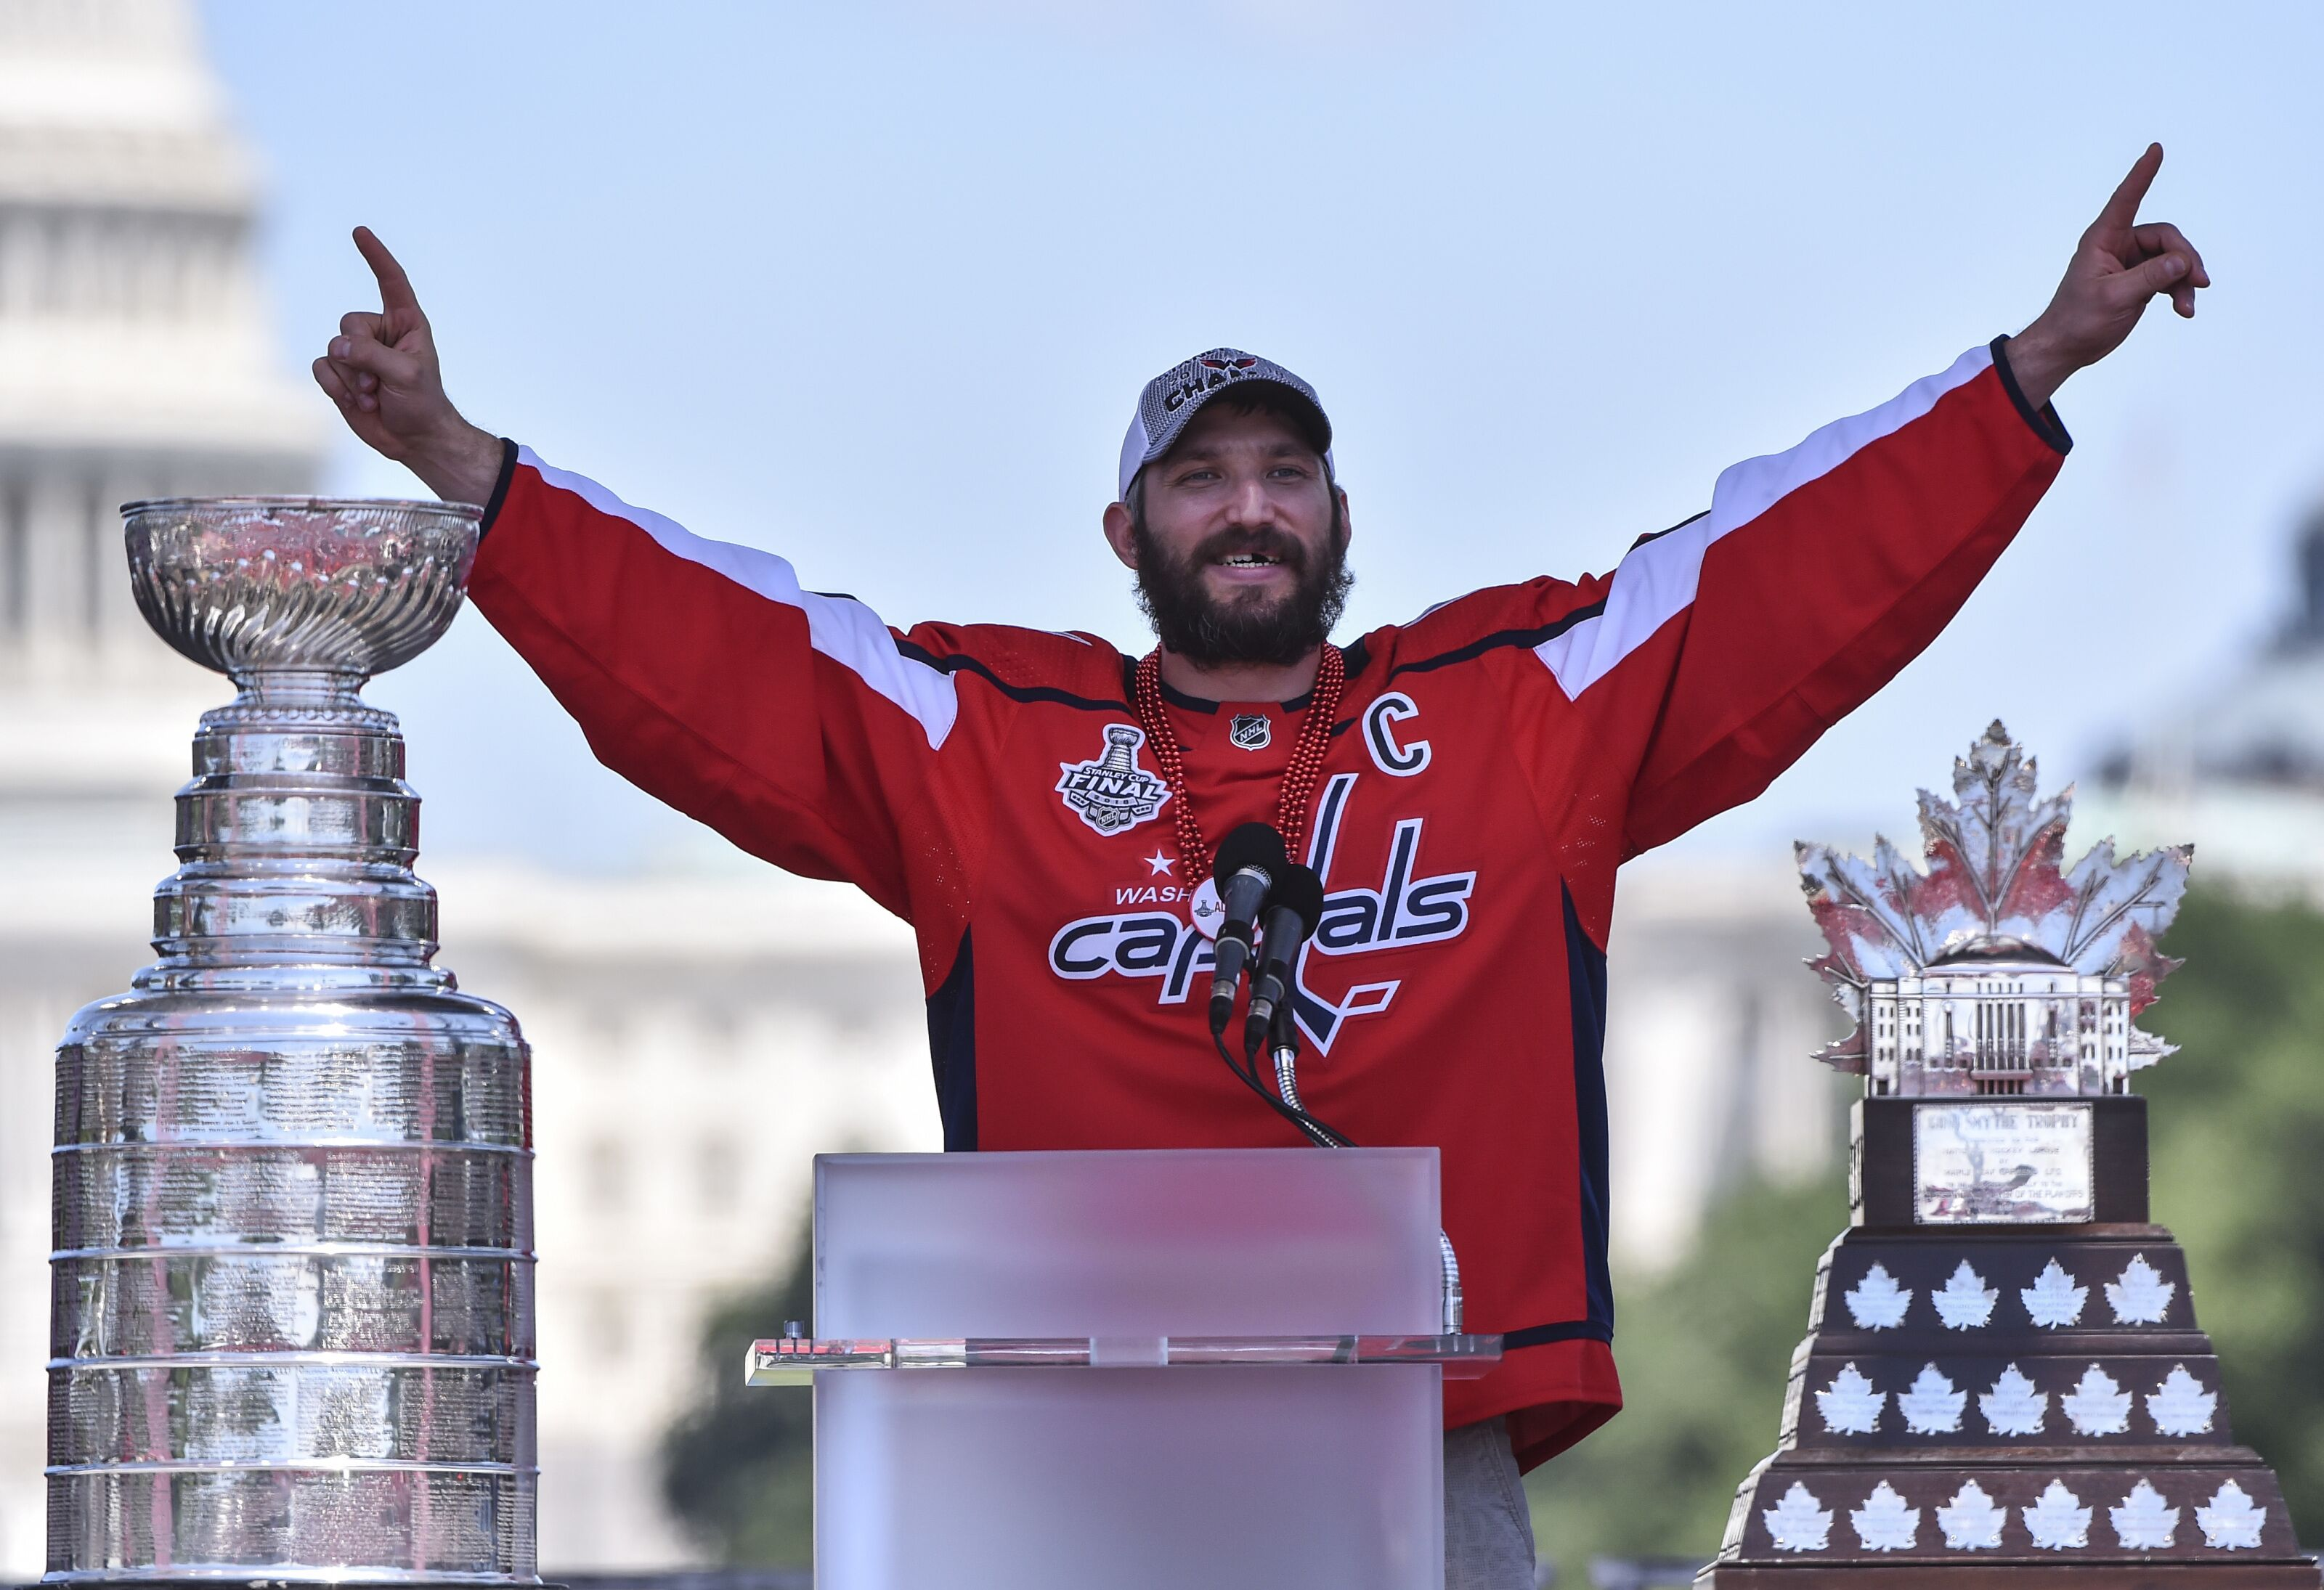 Washington Capitals preview: Alex Ovechkin leads defending champions